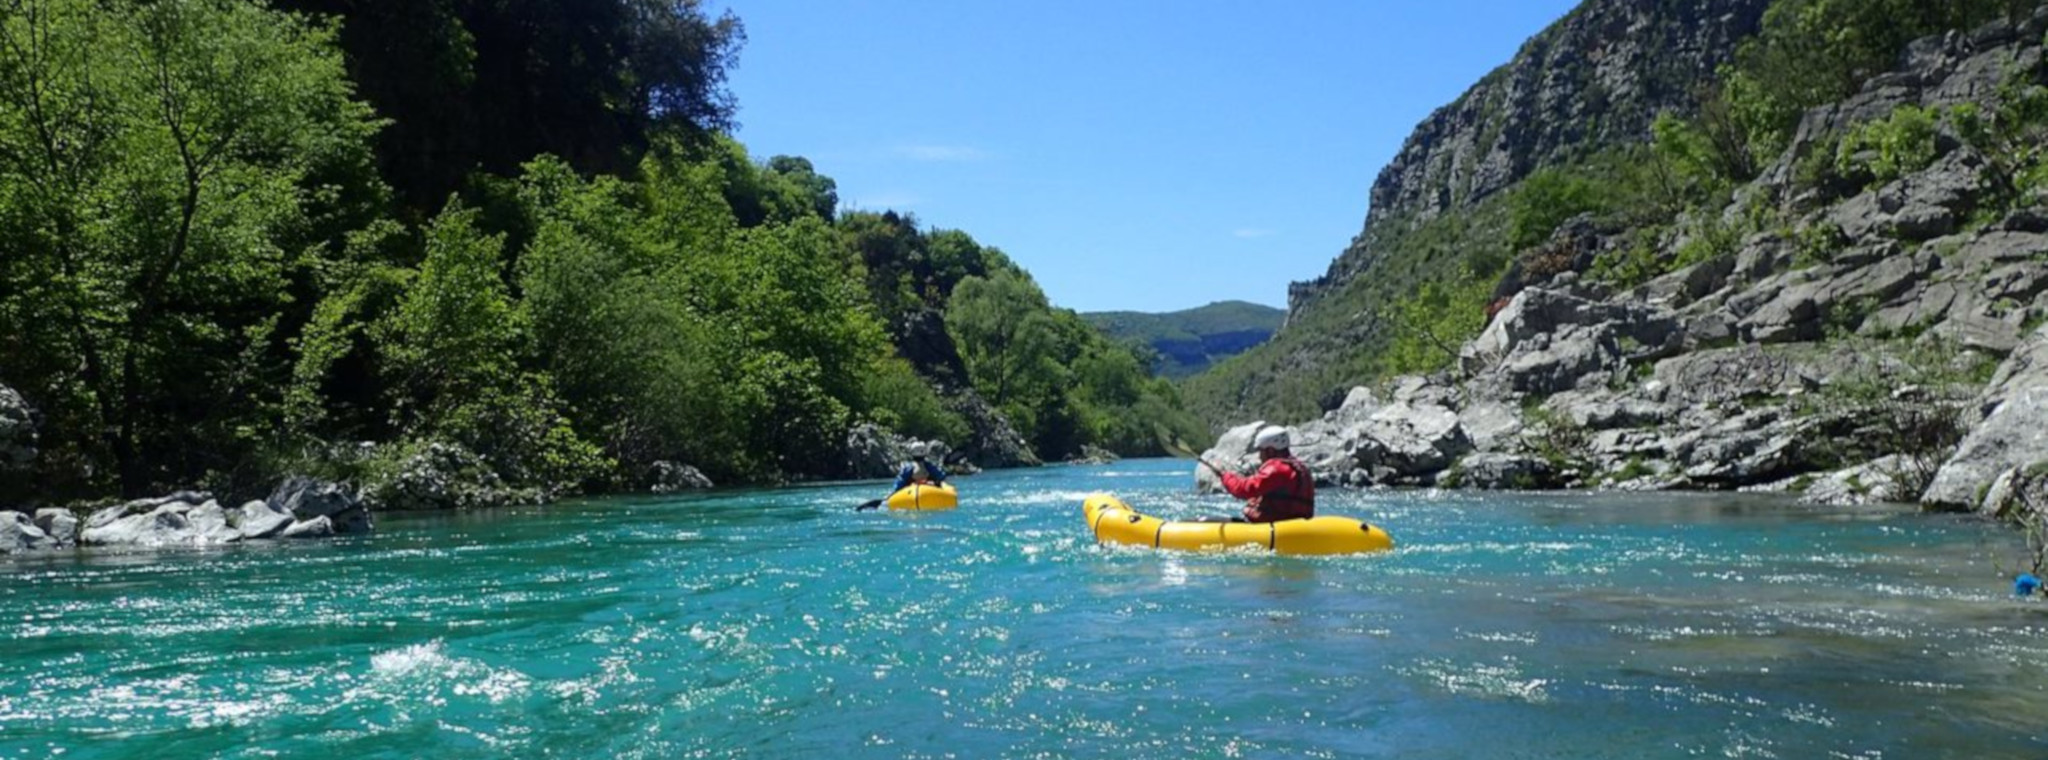 Packrafting Montenegro – a whitewater beginner's course that won't break the bank